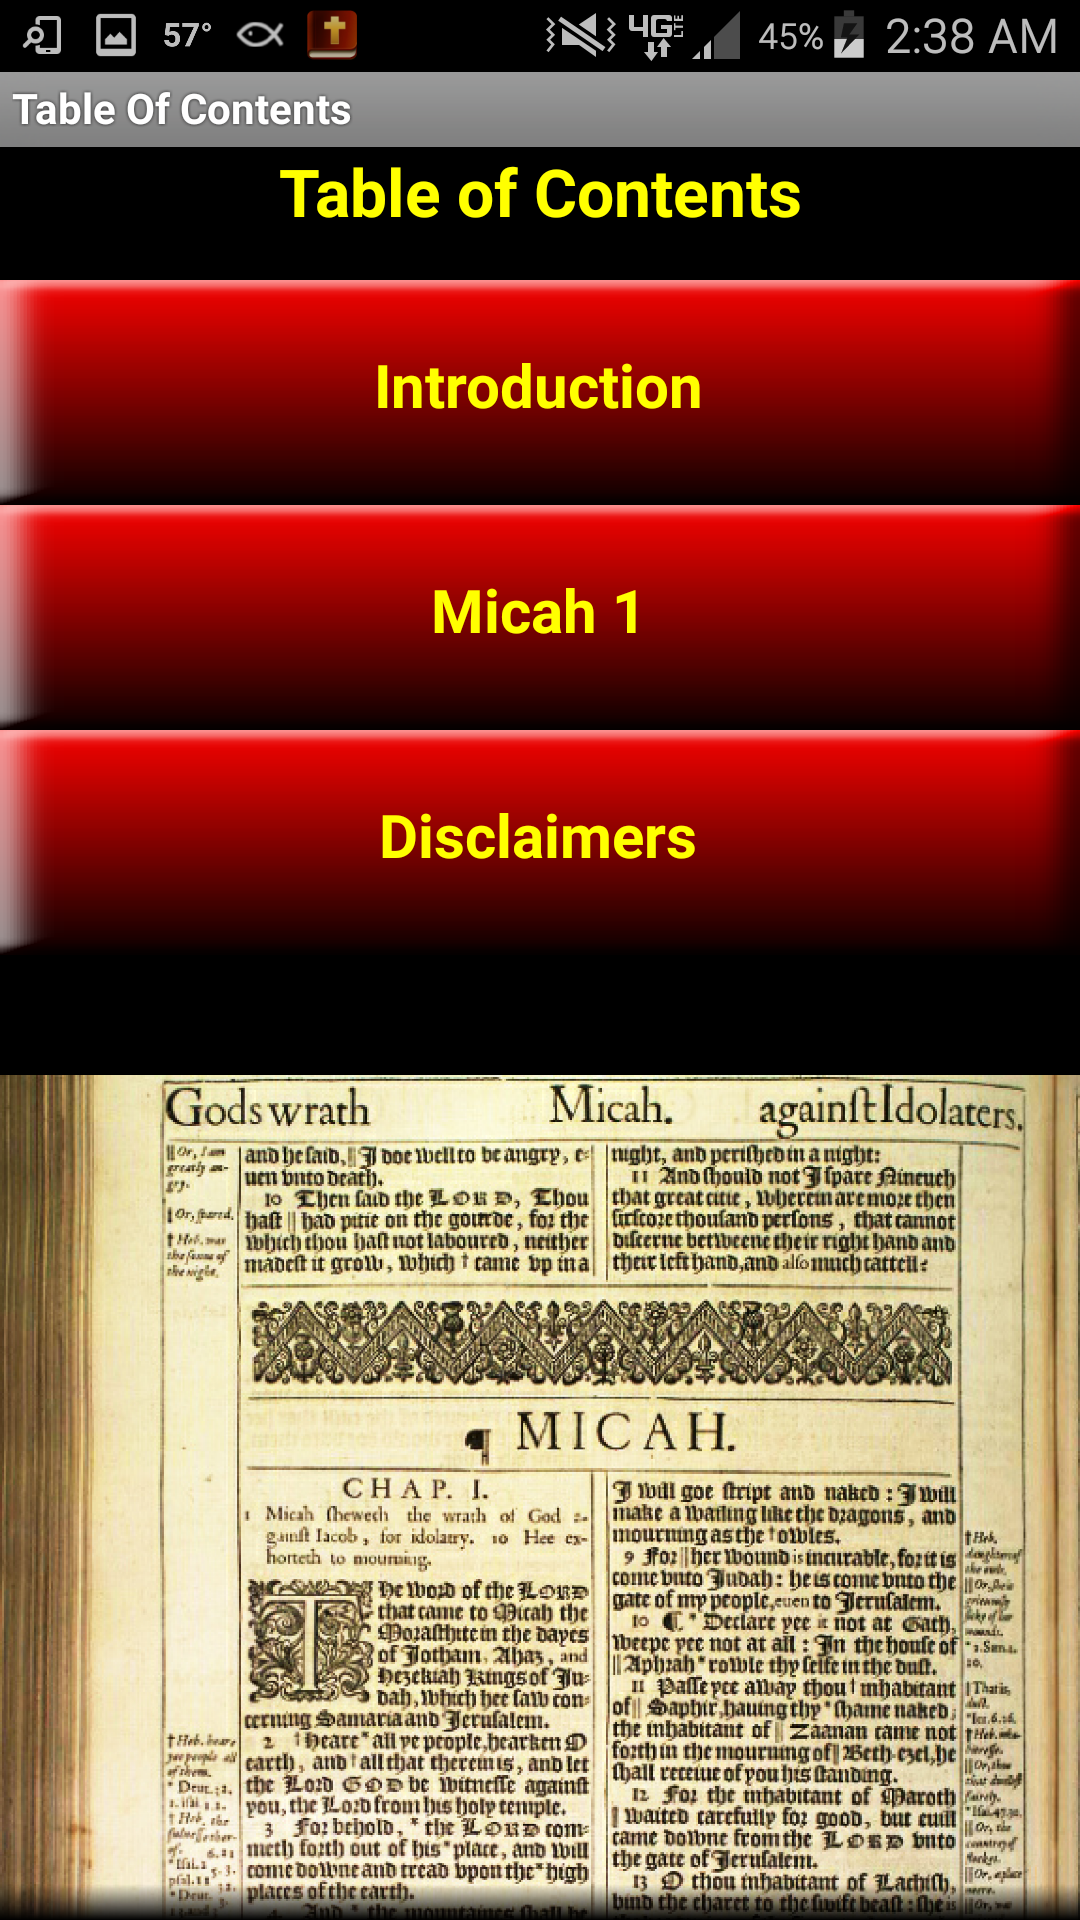 This app contains Chapter 1 from the Book of Micah in the